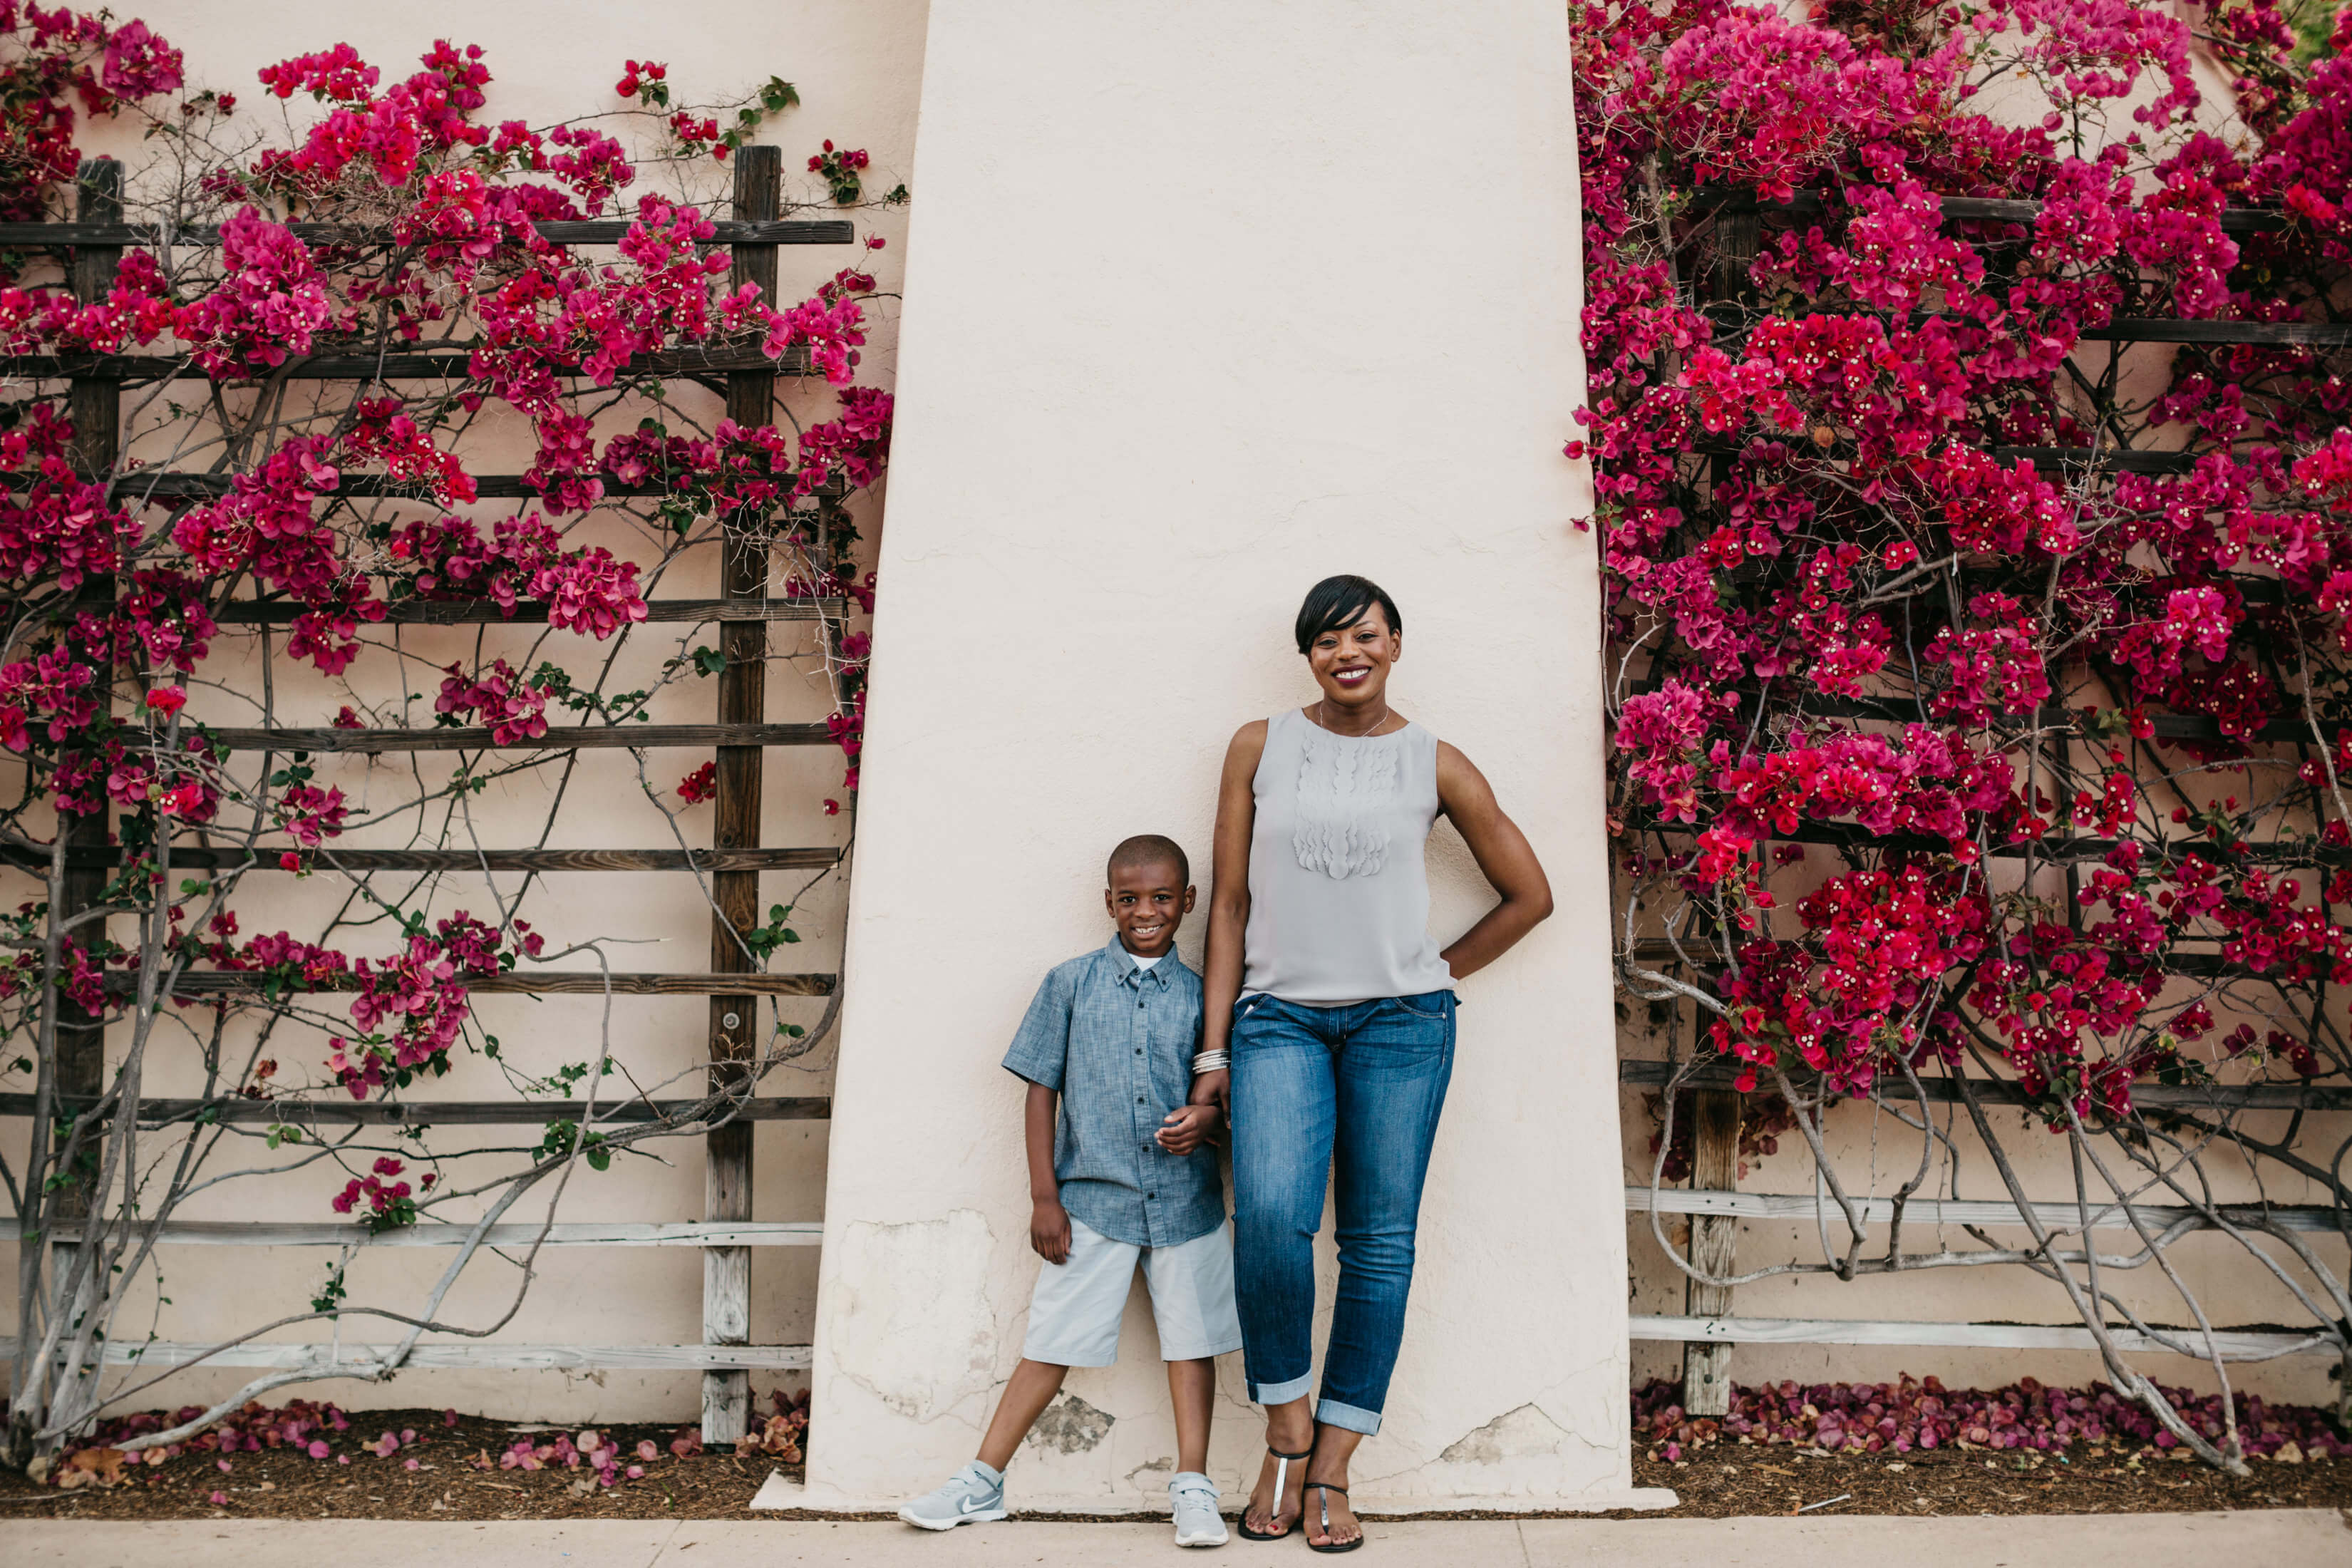 A mother and her young son stand in front of a building in San Diego, California.